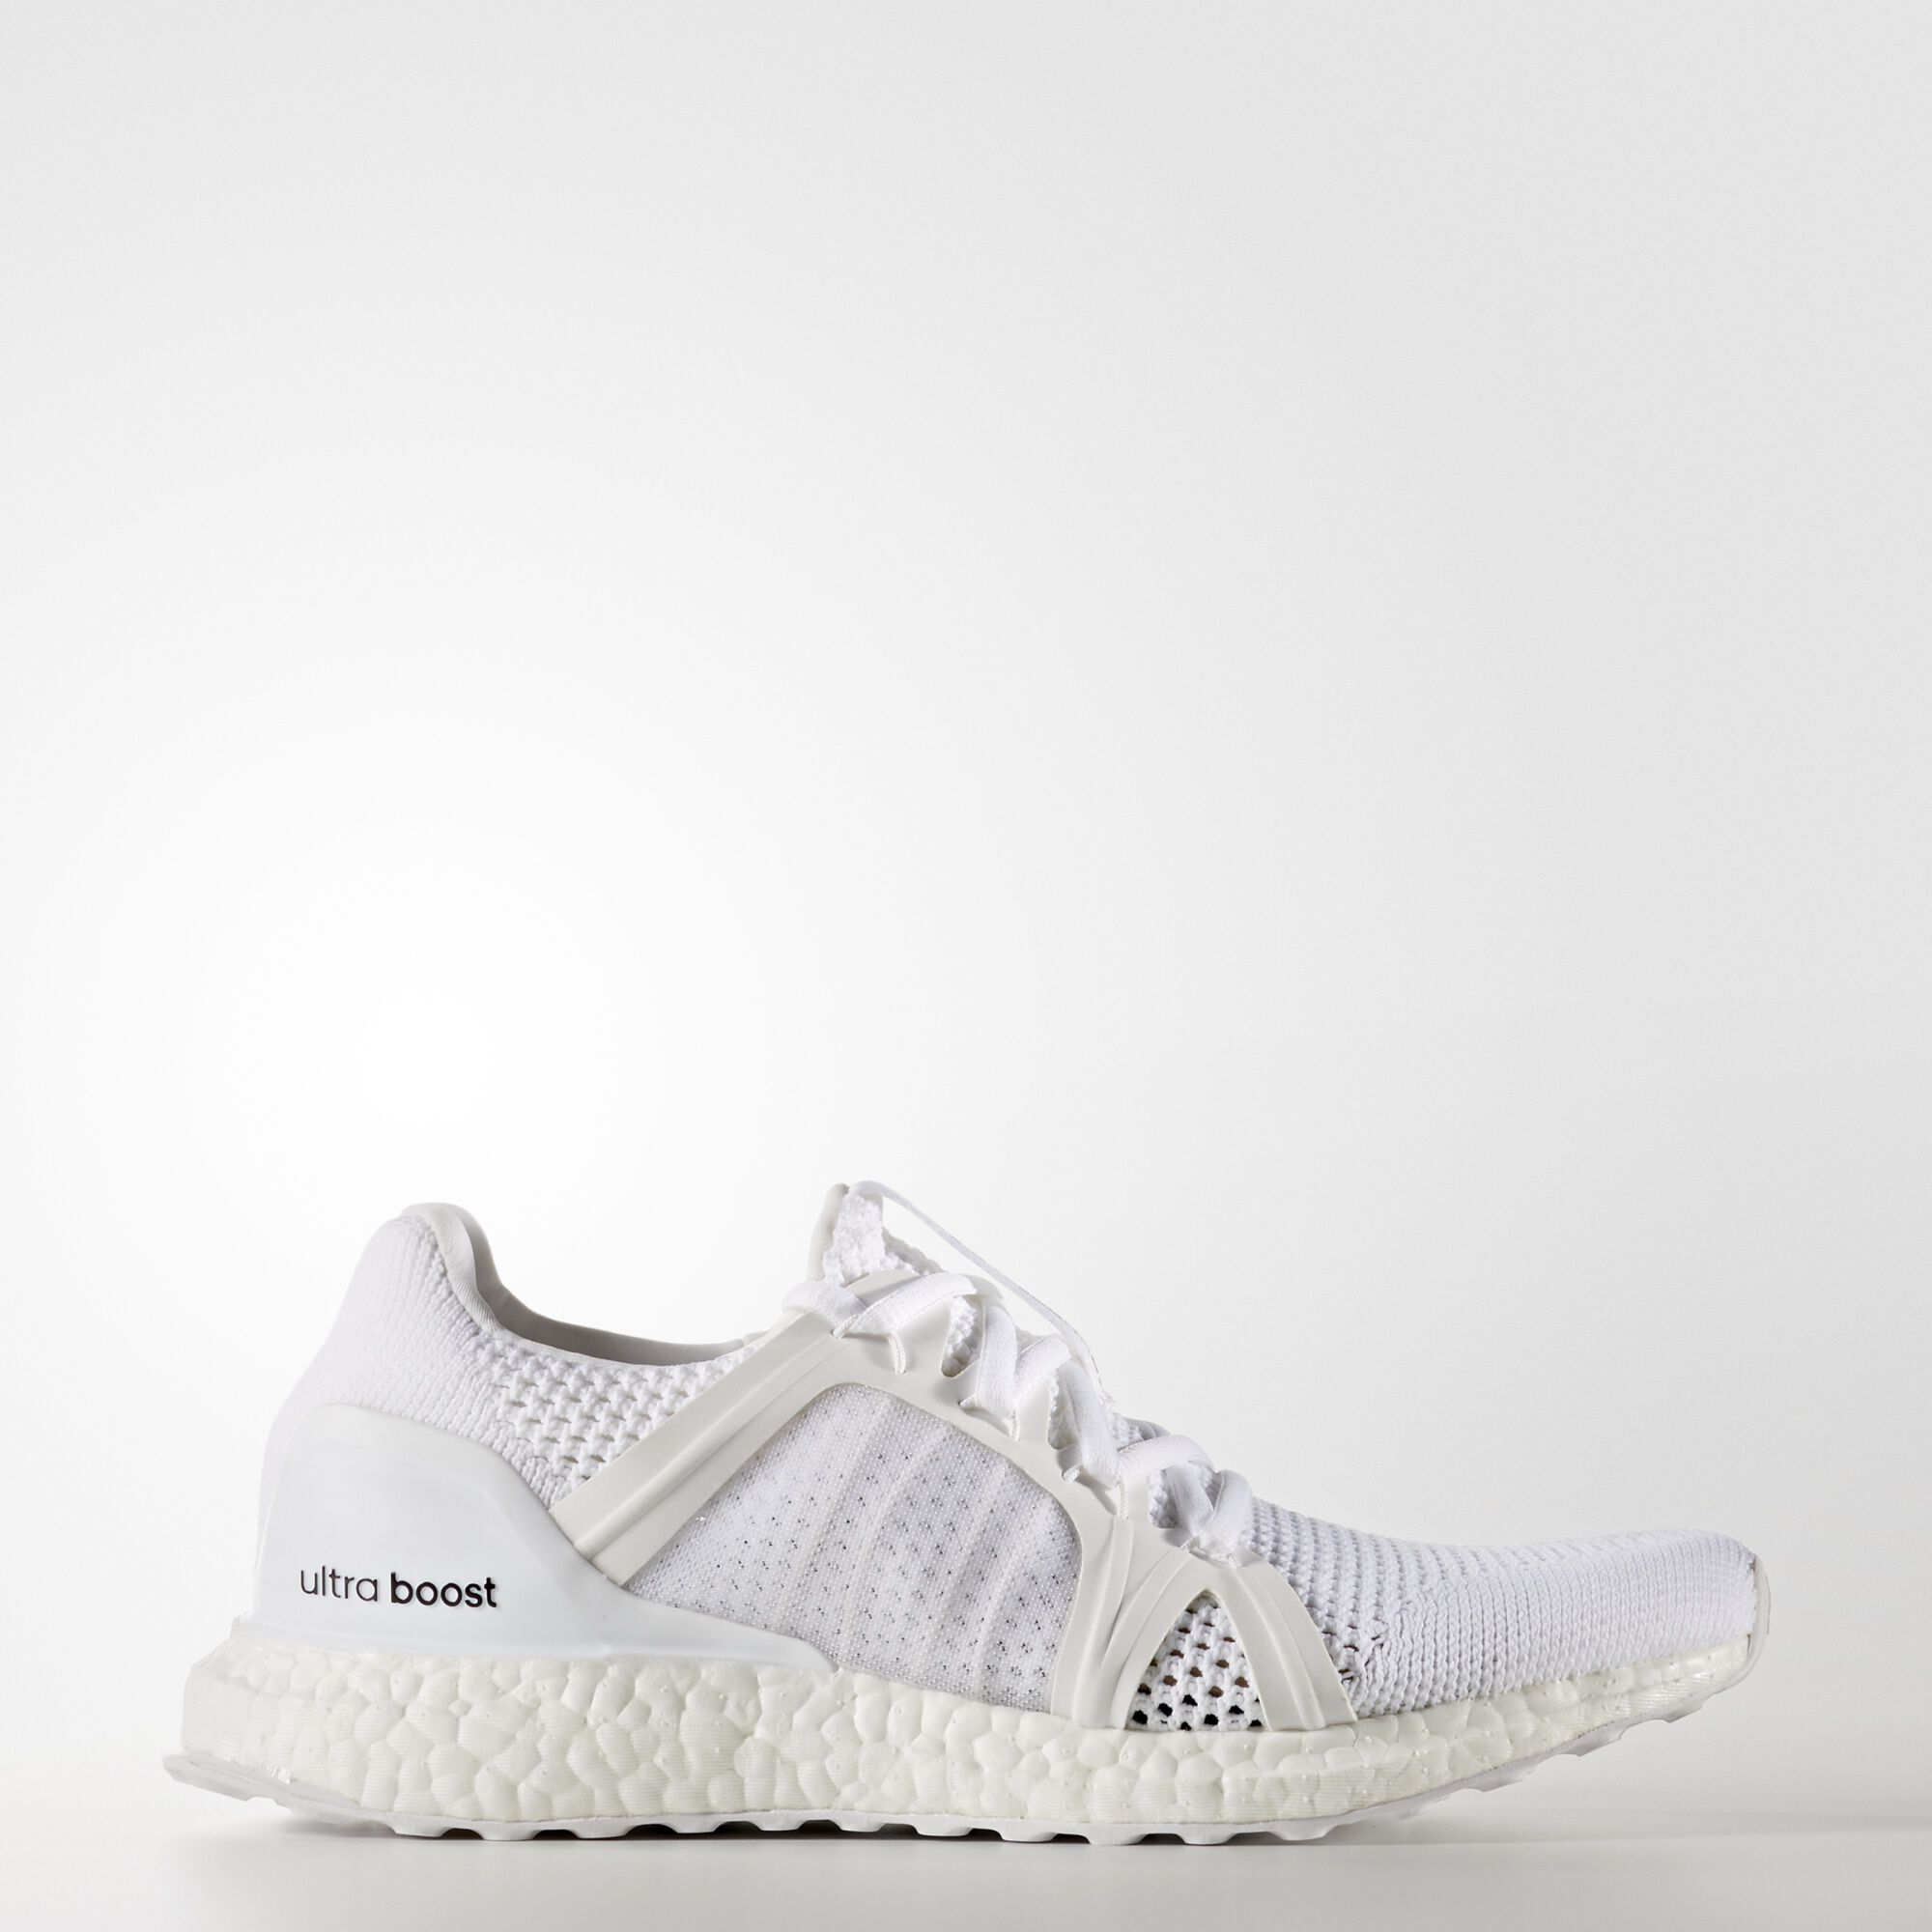 Latest Adidas 3.0 UltraBoost Oreo / Zebra Plus Kanye West Triple White